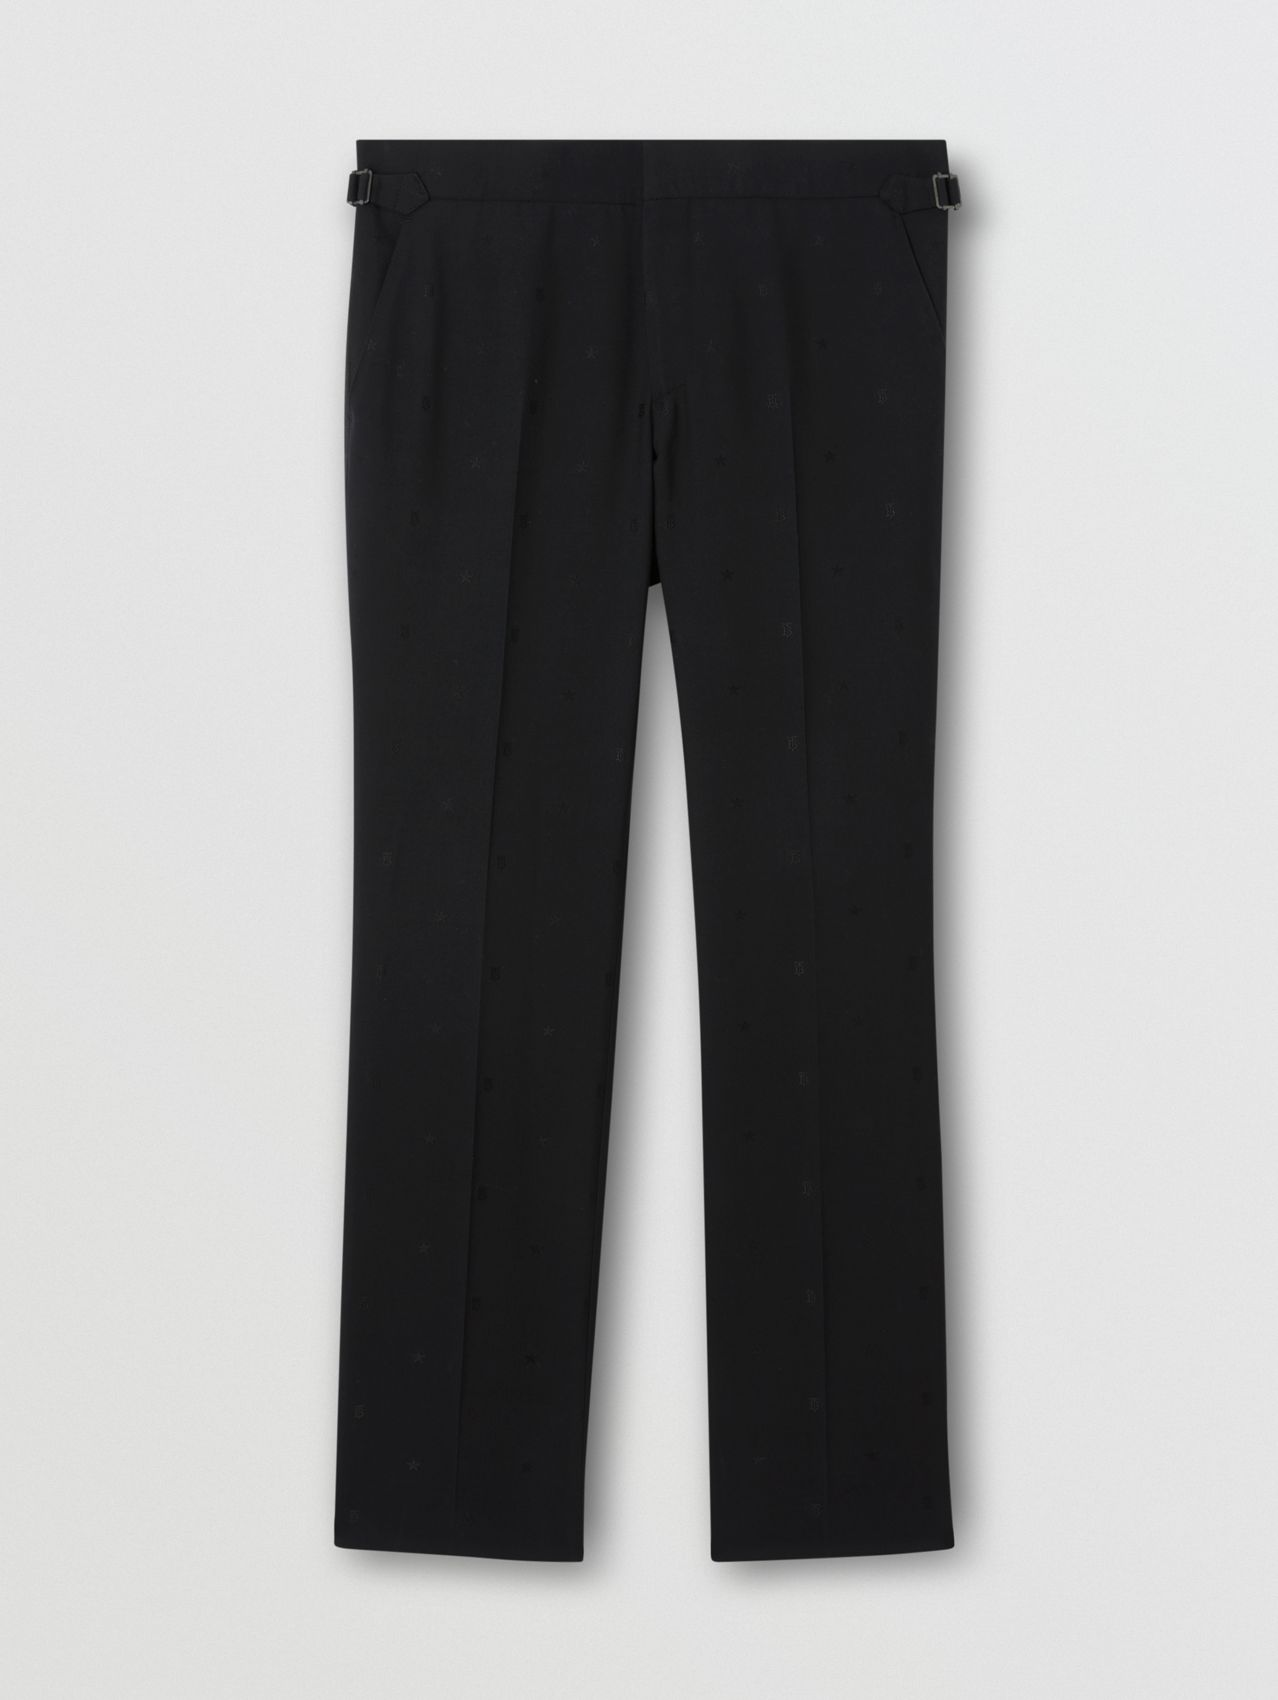 Monogram and Star Wool Silk Jacquard Trousers in Black